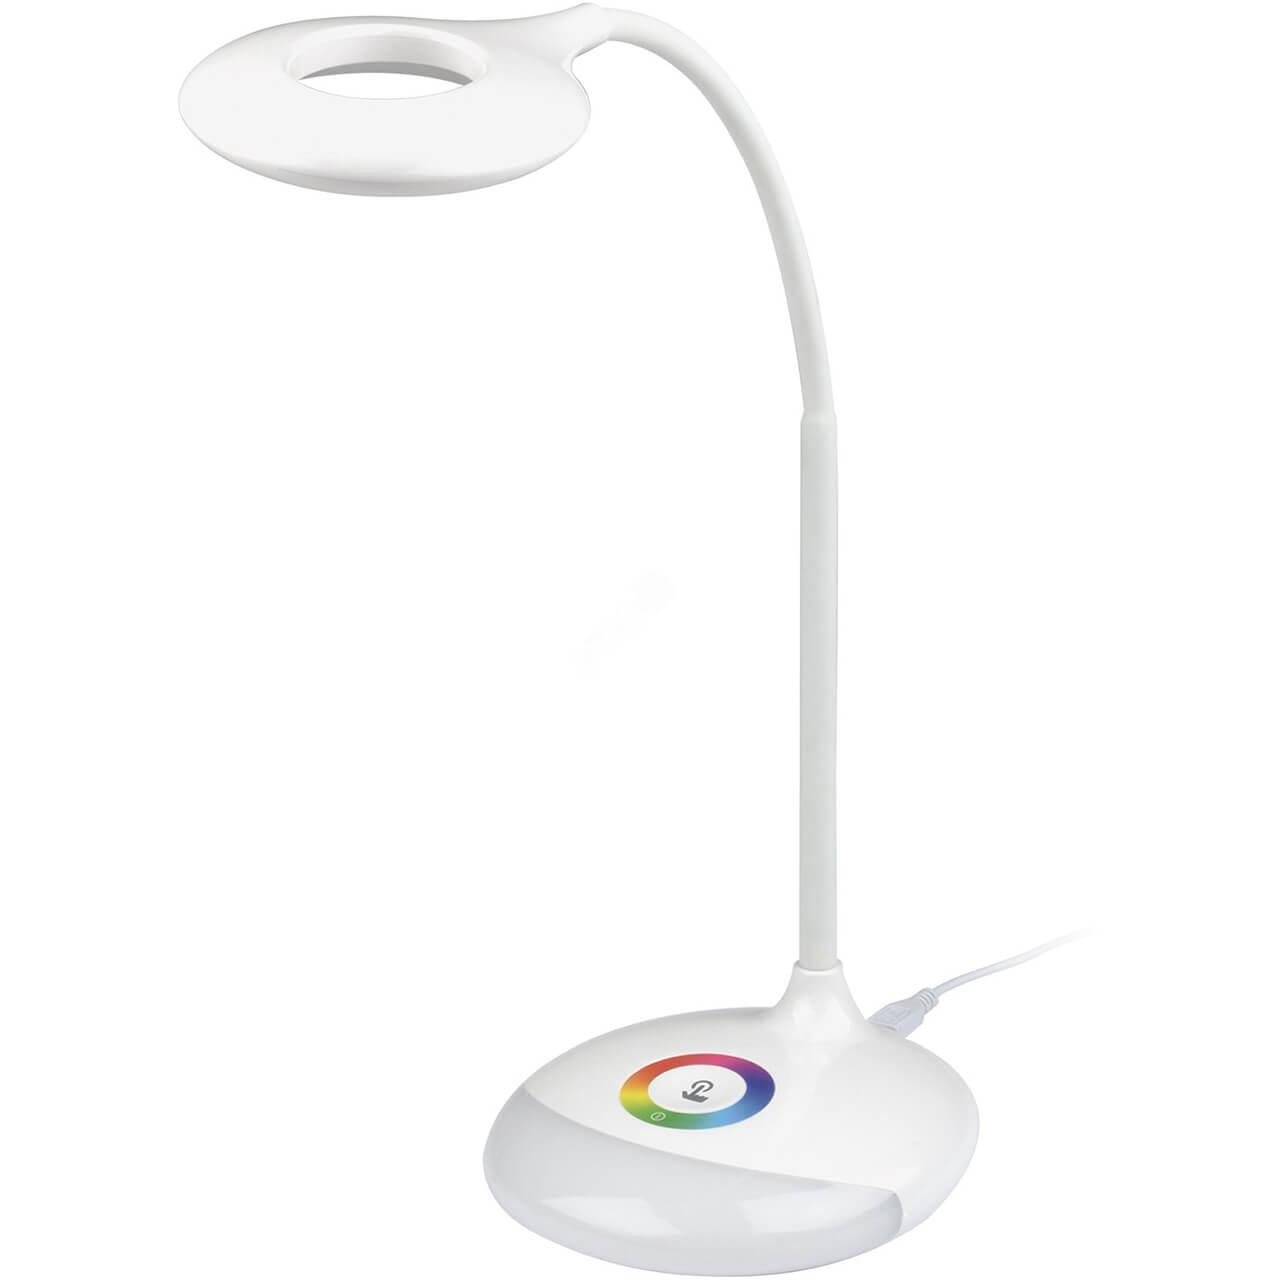 Настольный светильник Uniel TLD-535 White/LED/250Lm/5500K/Dimmer, LED, 3 Вт walang ting full color touch led dimmer white dc 12 24v